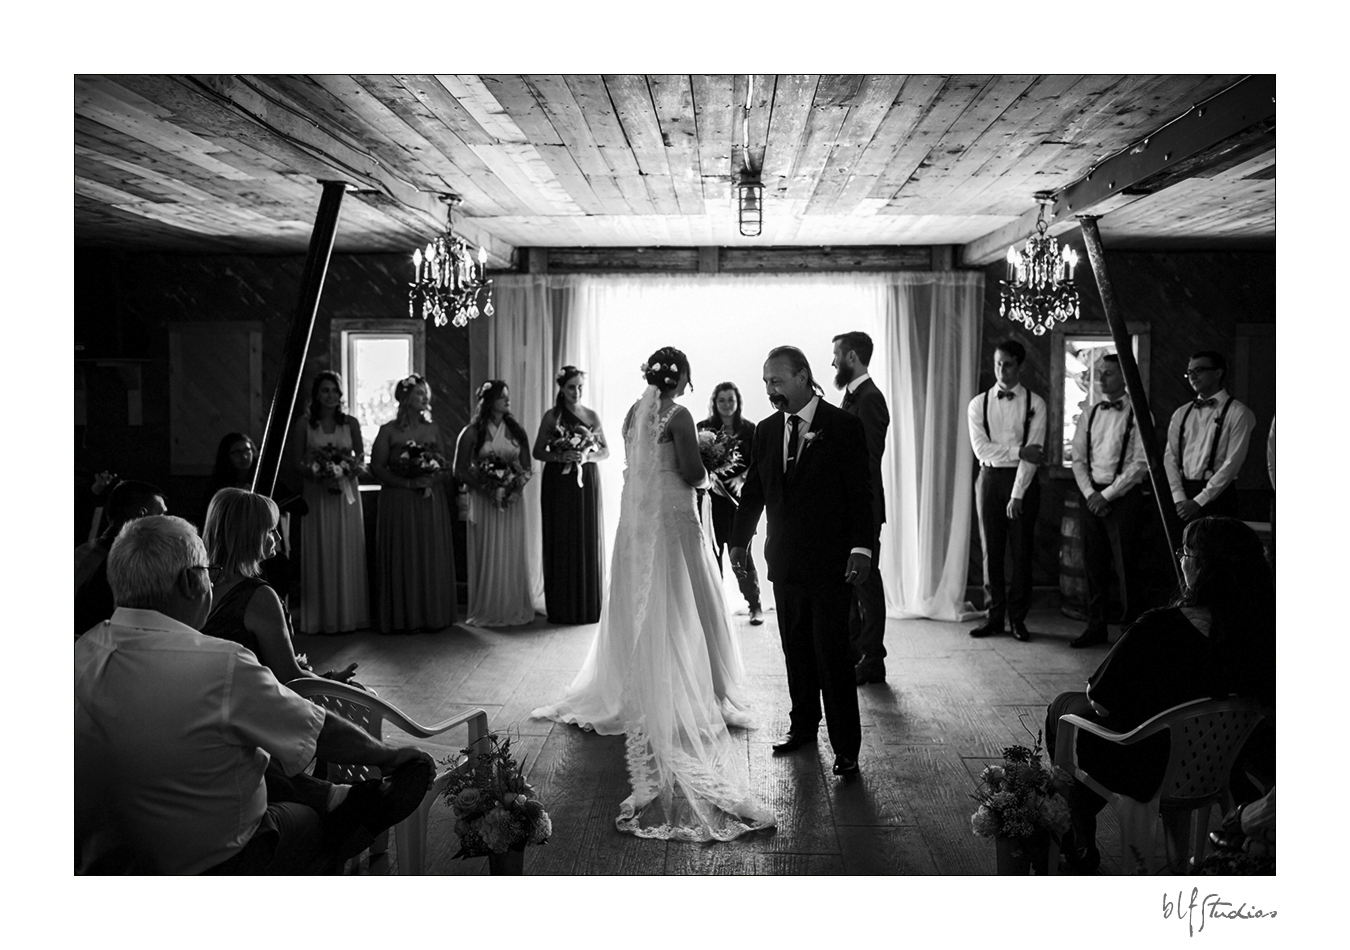 008-manitoba-rustic-barn-wedding-photos.jpg